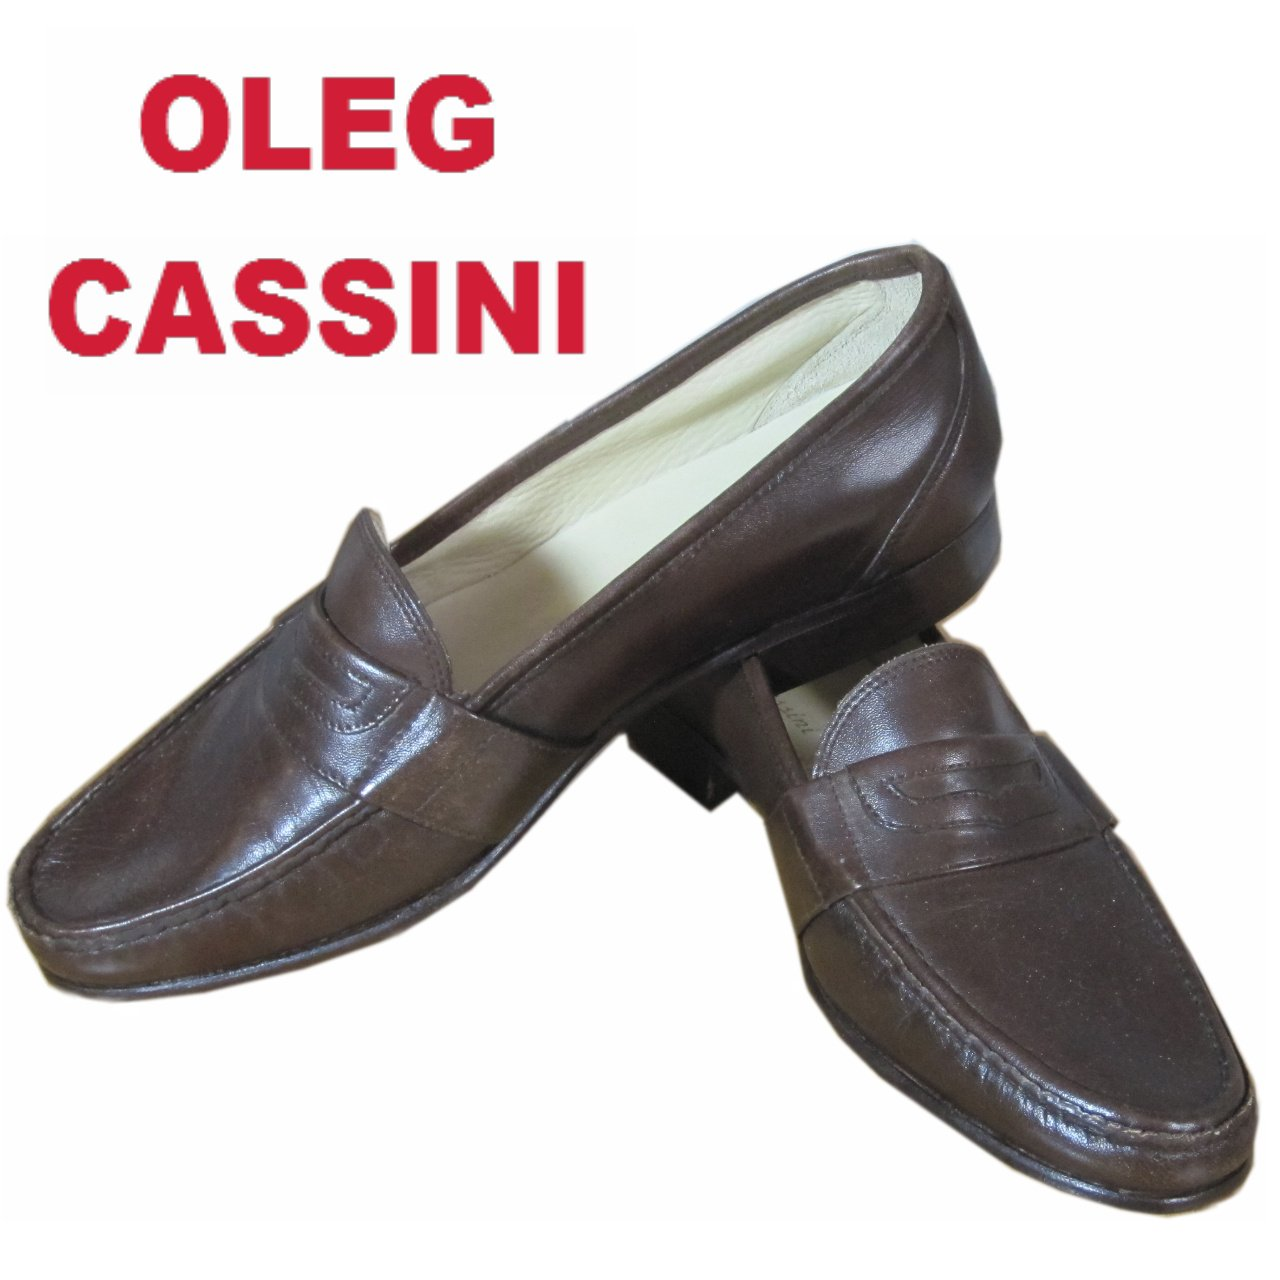 sz 9.5 OLEG CASSINI Hand Made Italian Mens Loafers $59.99 - List price $425